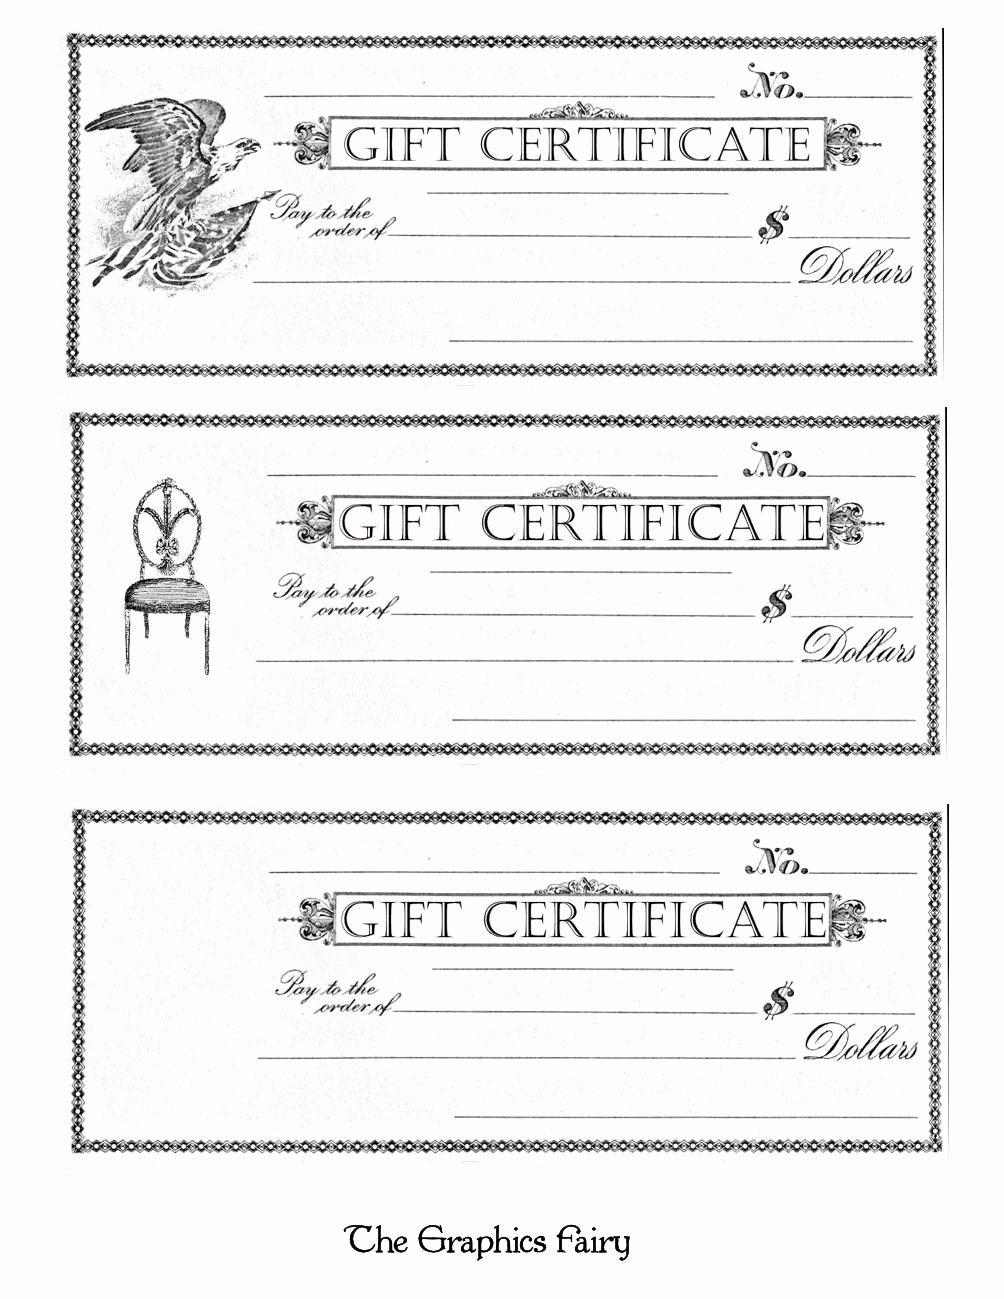 Free Printable Blank Certificates Awesome Free Printable Gift Certificates the Graphics Fairy